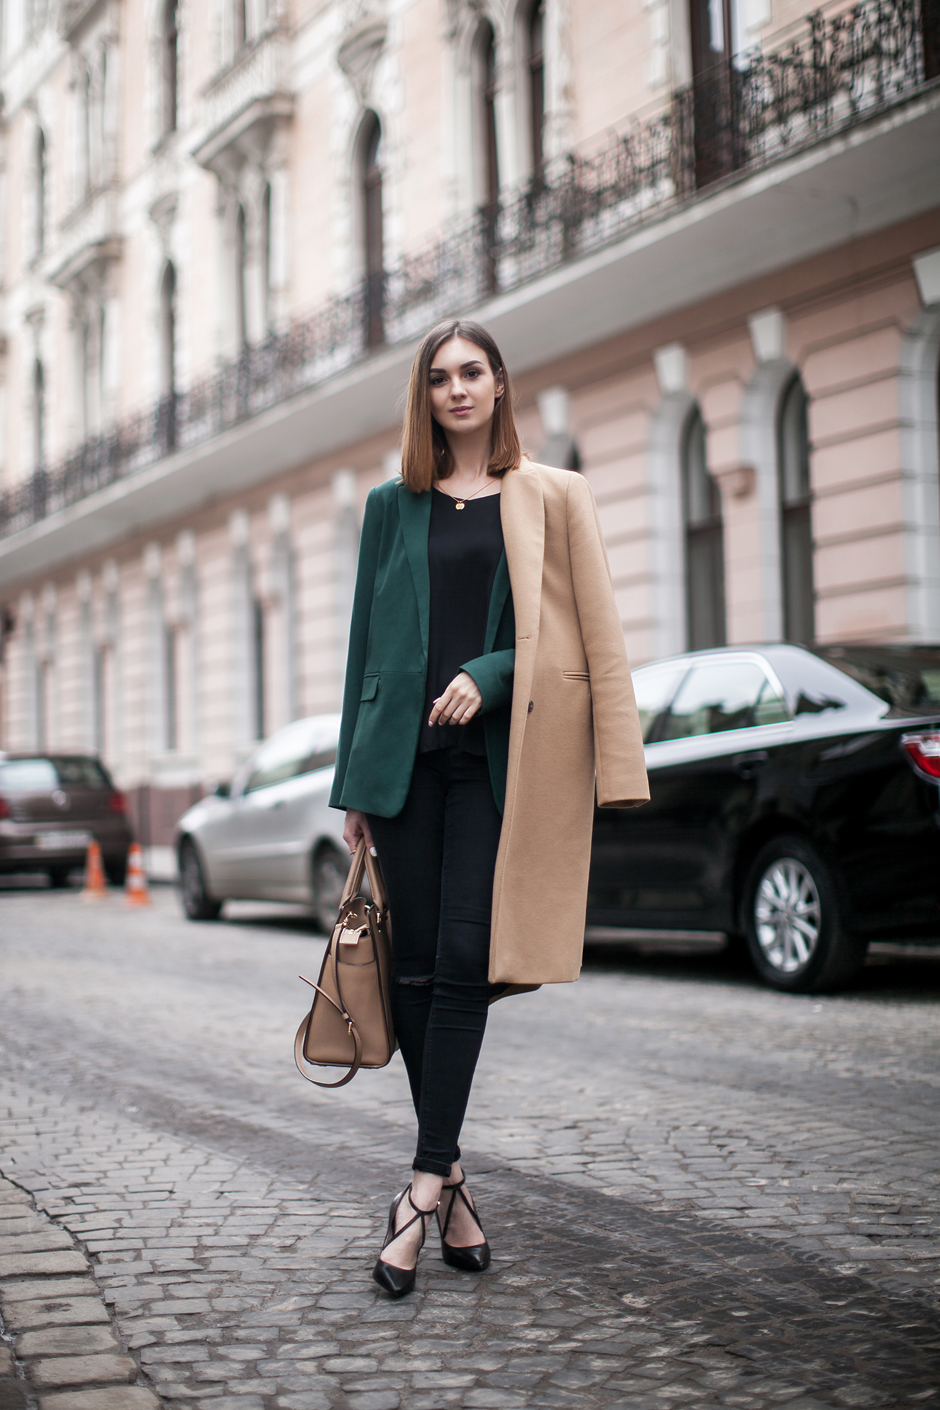 green-blazer-skinny-jeans-outfit